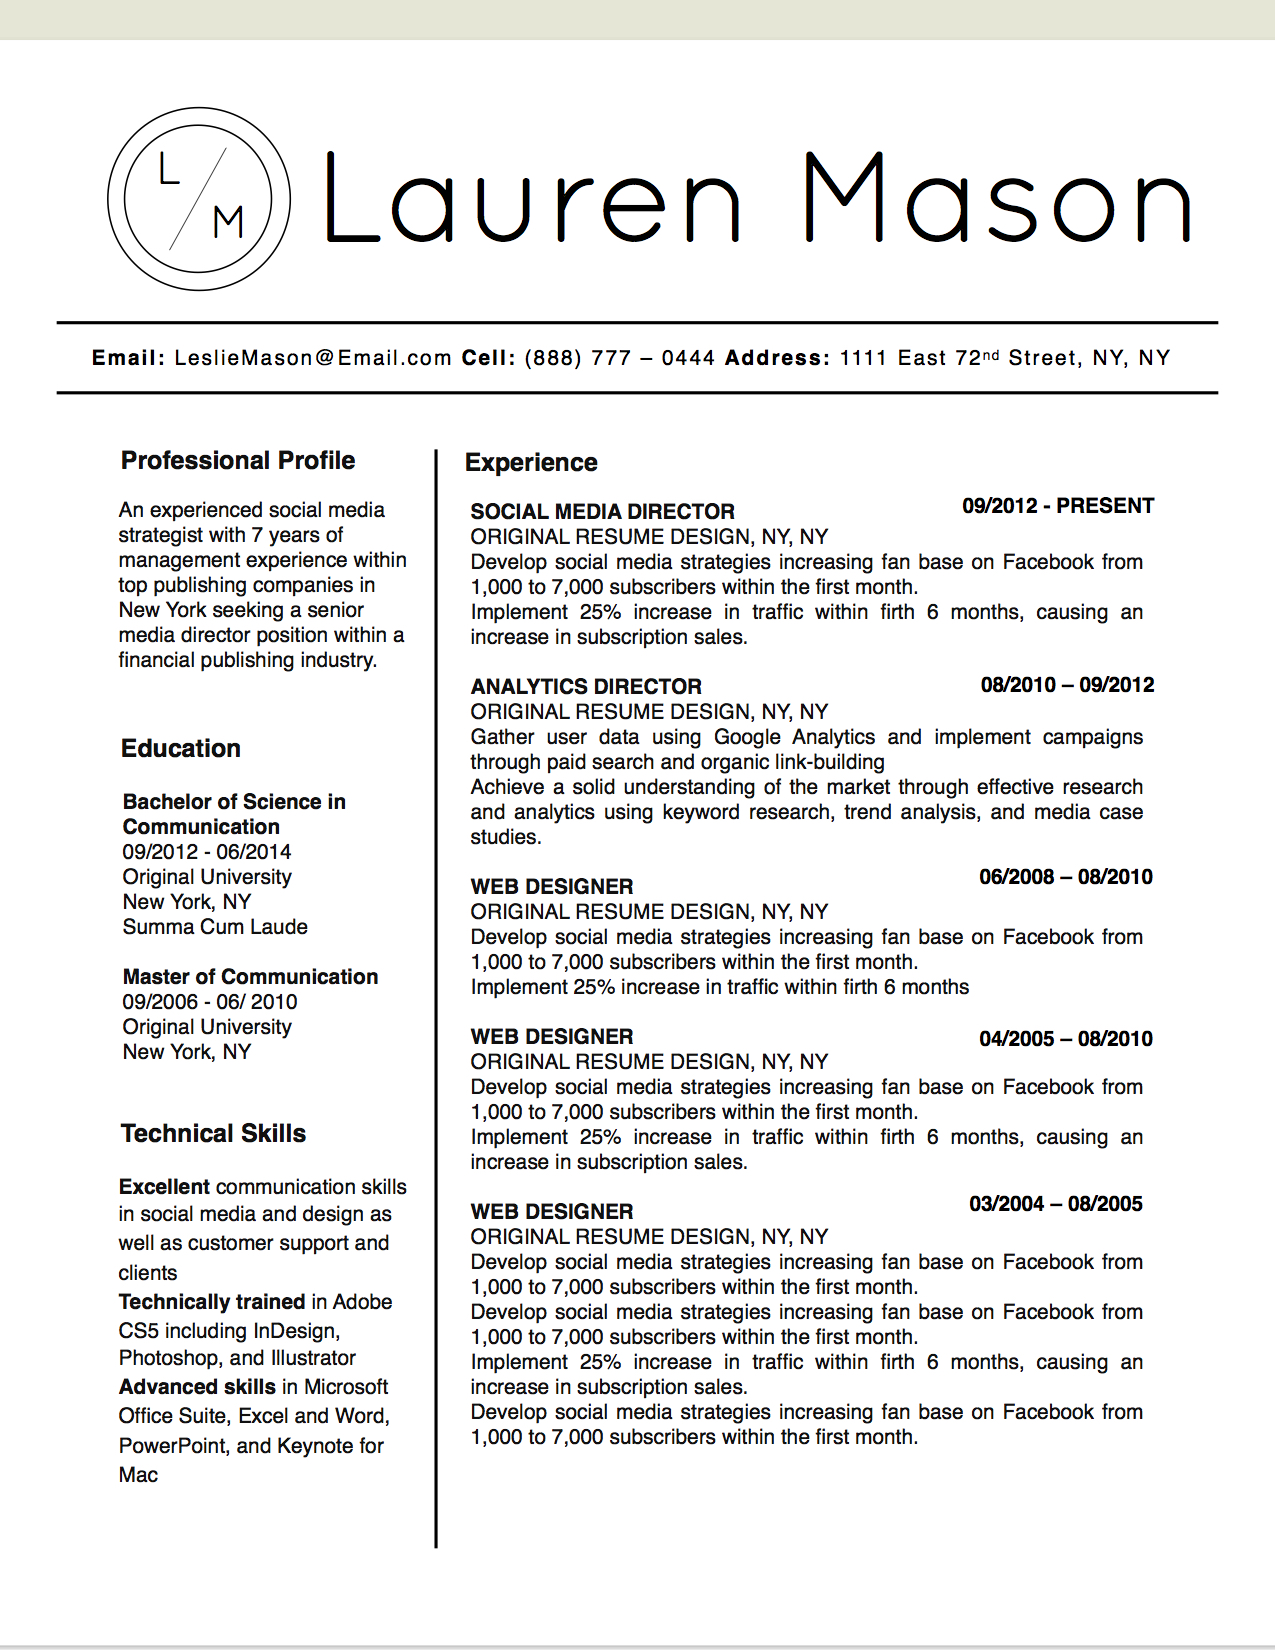 Other Name Of Resume Lauren Mason Resume Template Stand Out Shop